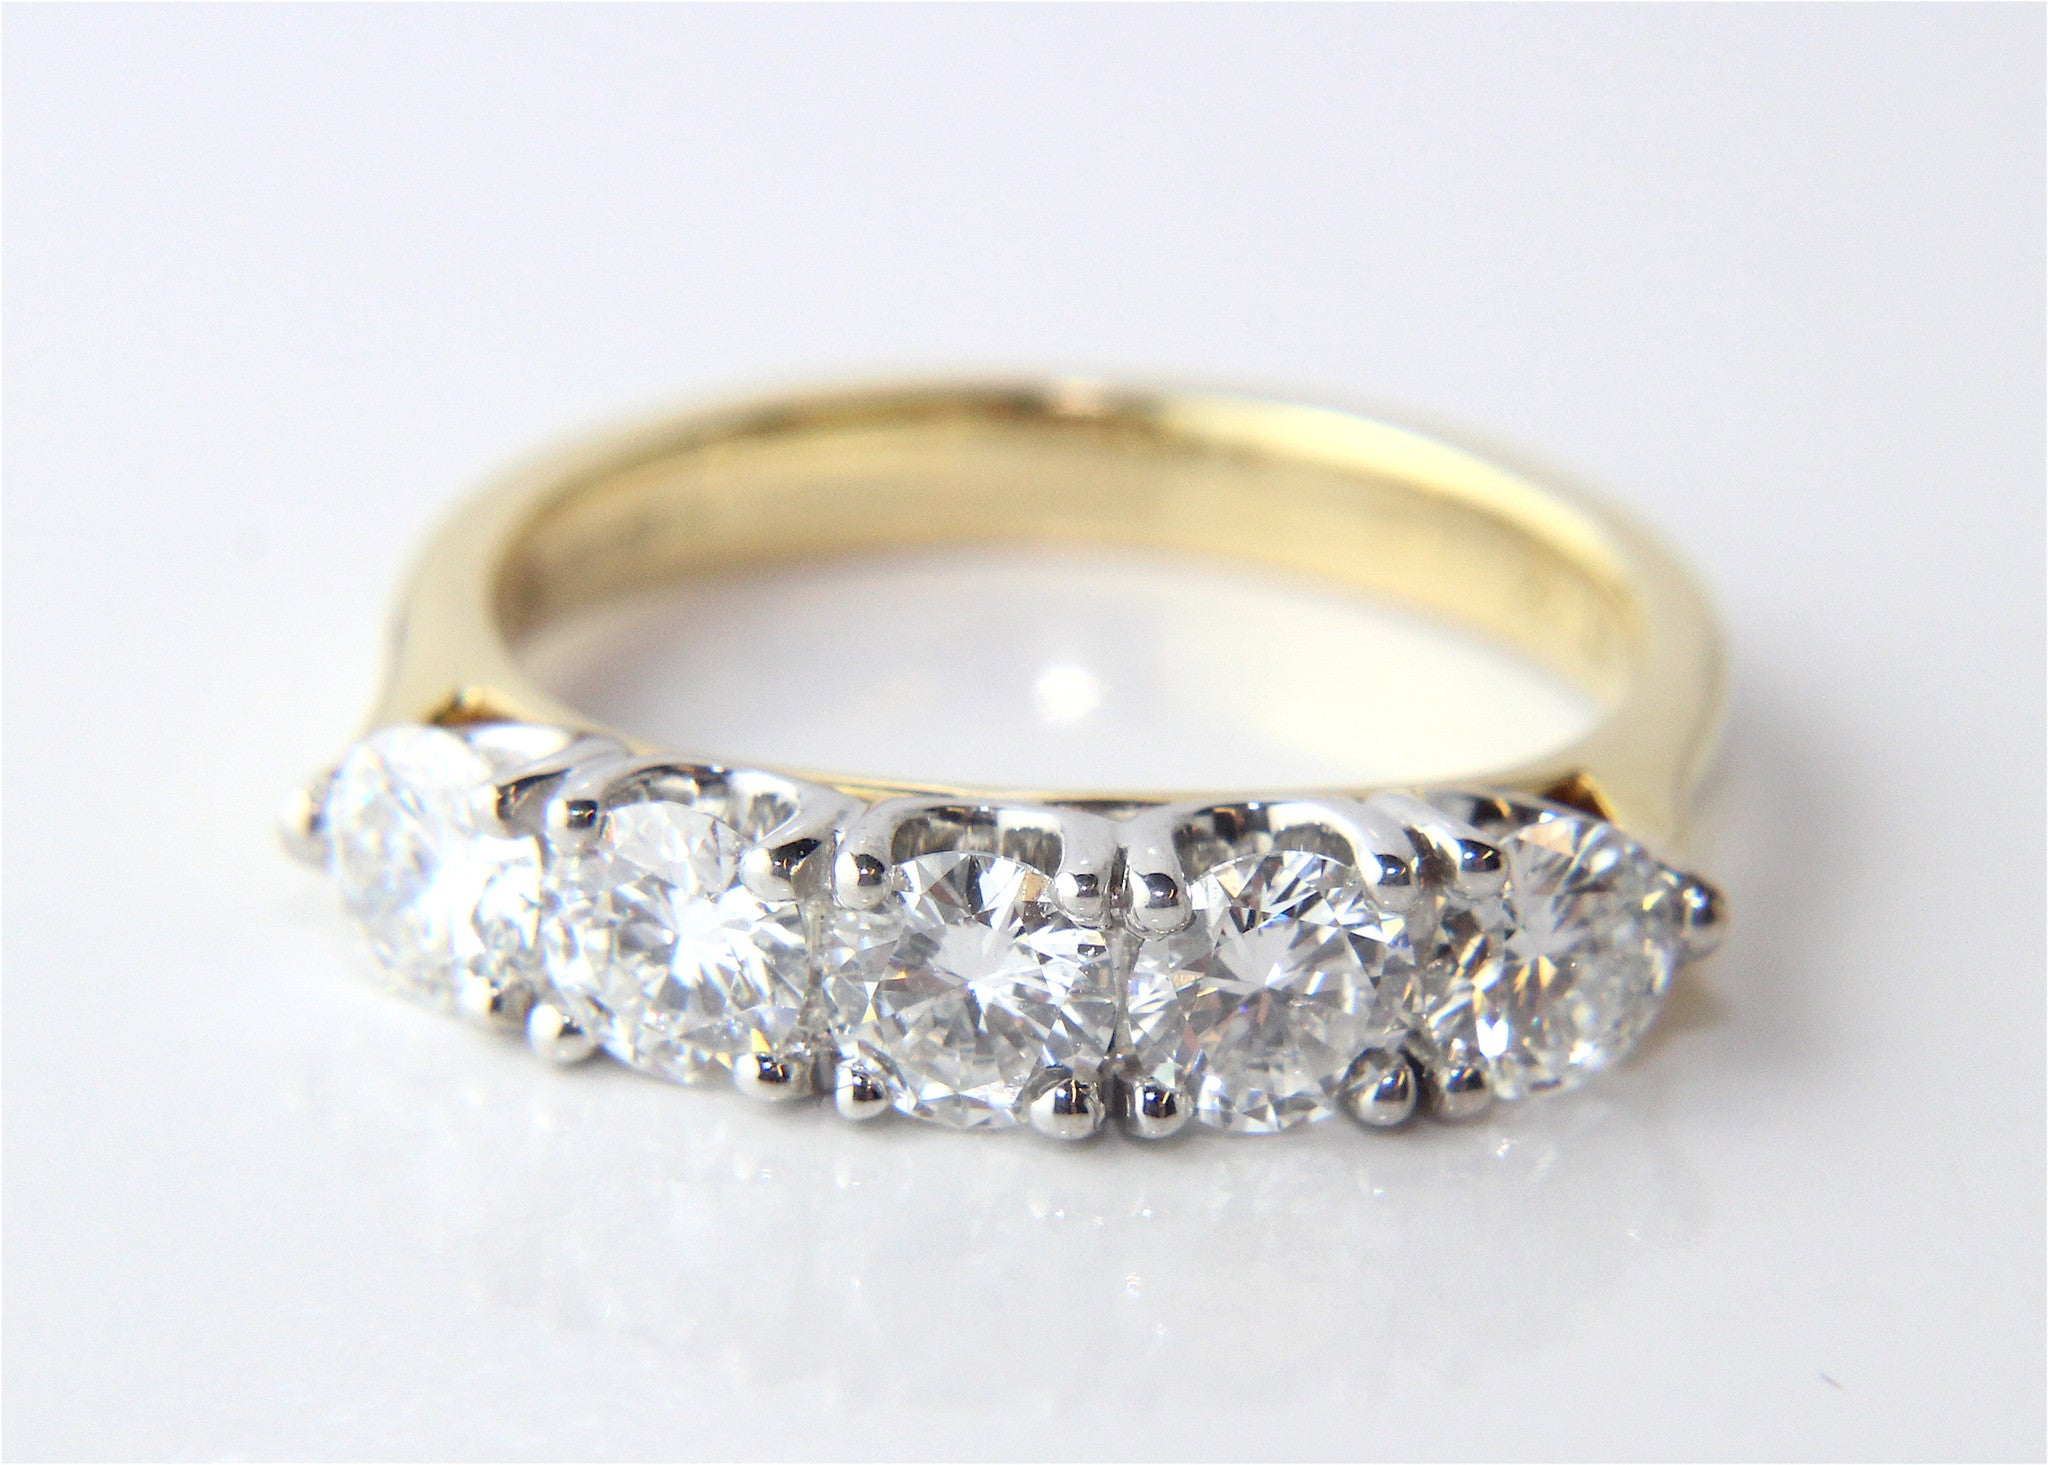 nl yg yellow white bands eternity diamond cut band in radiant gold ring jewelry with carat